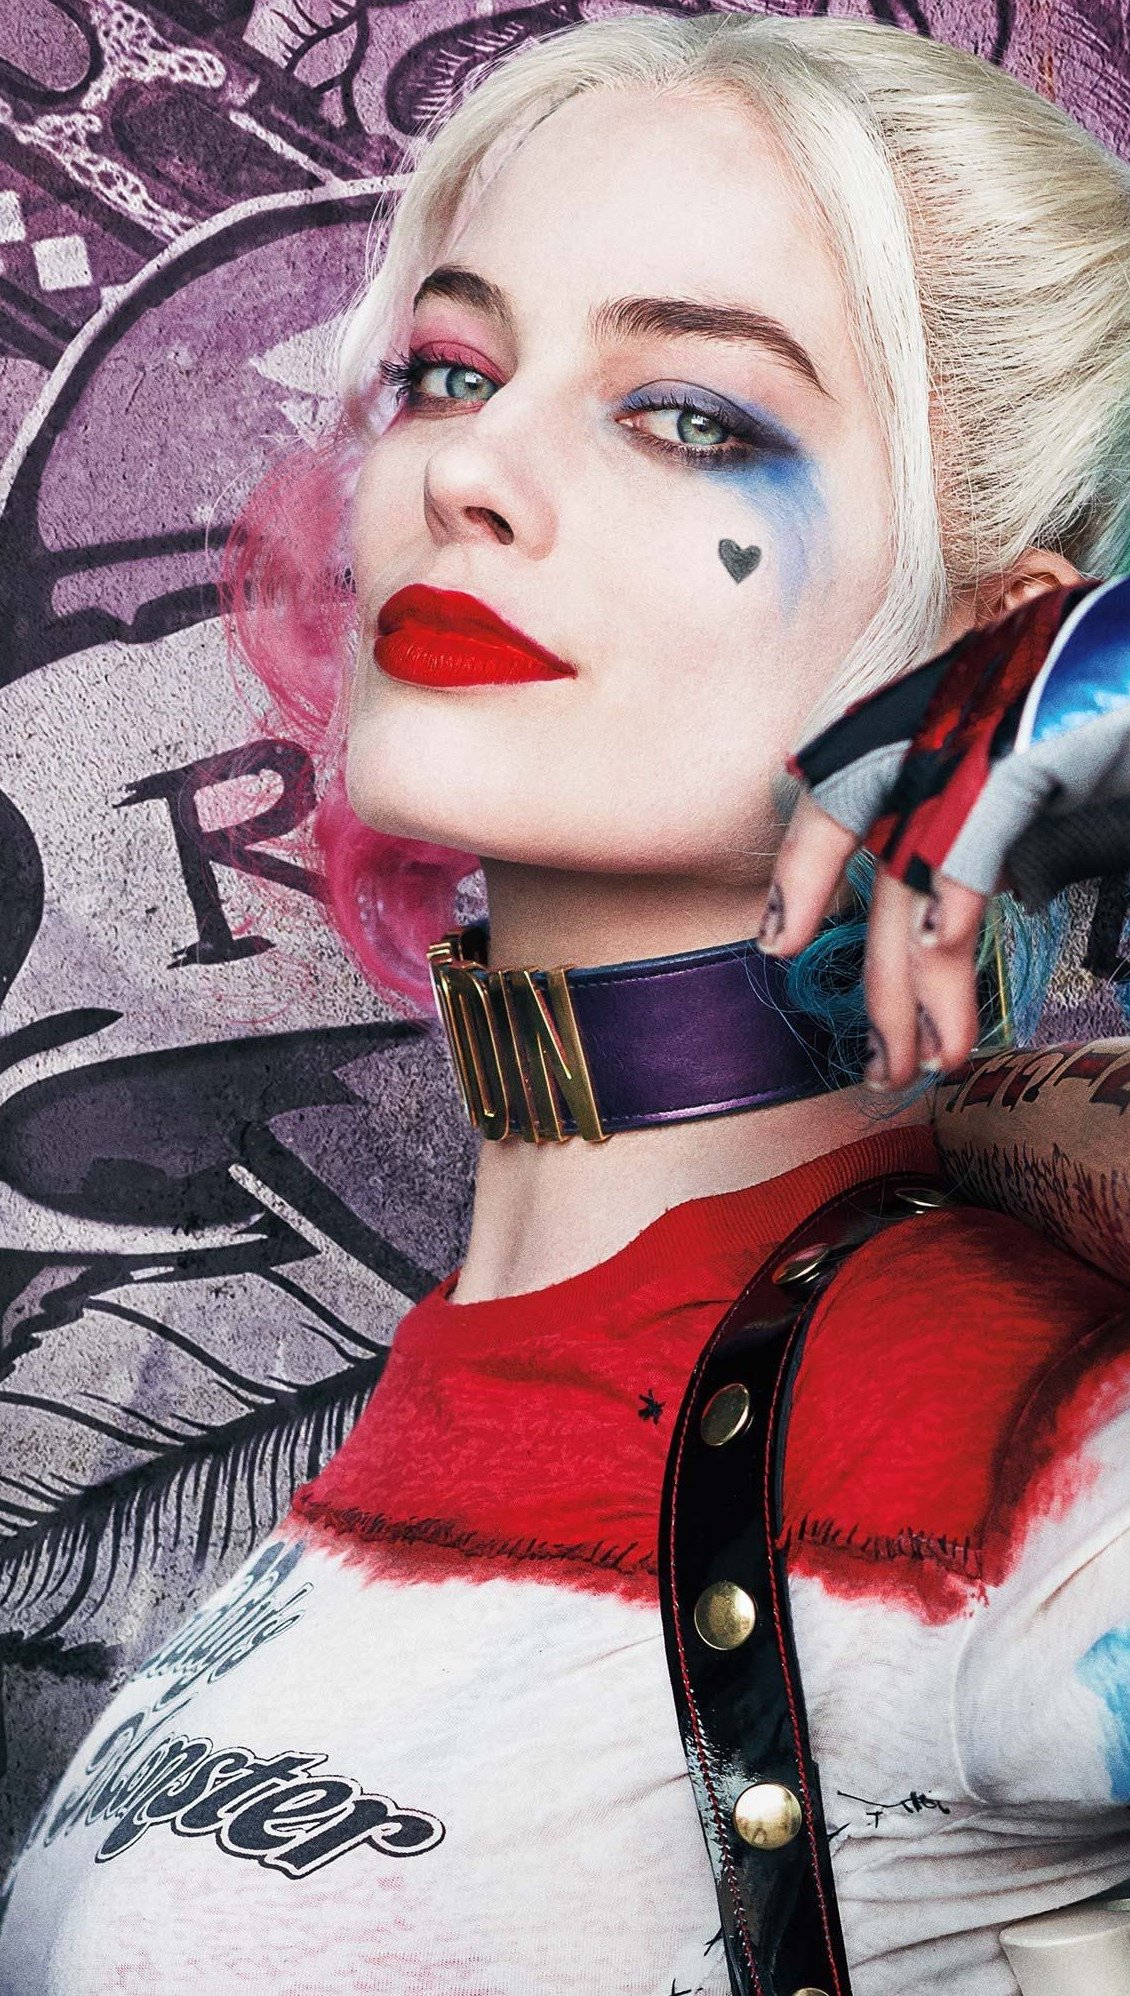 Wallpaper Harley Quinn is Margot Robbie in Suicide Squad Vertical